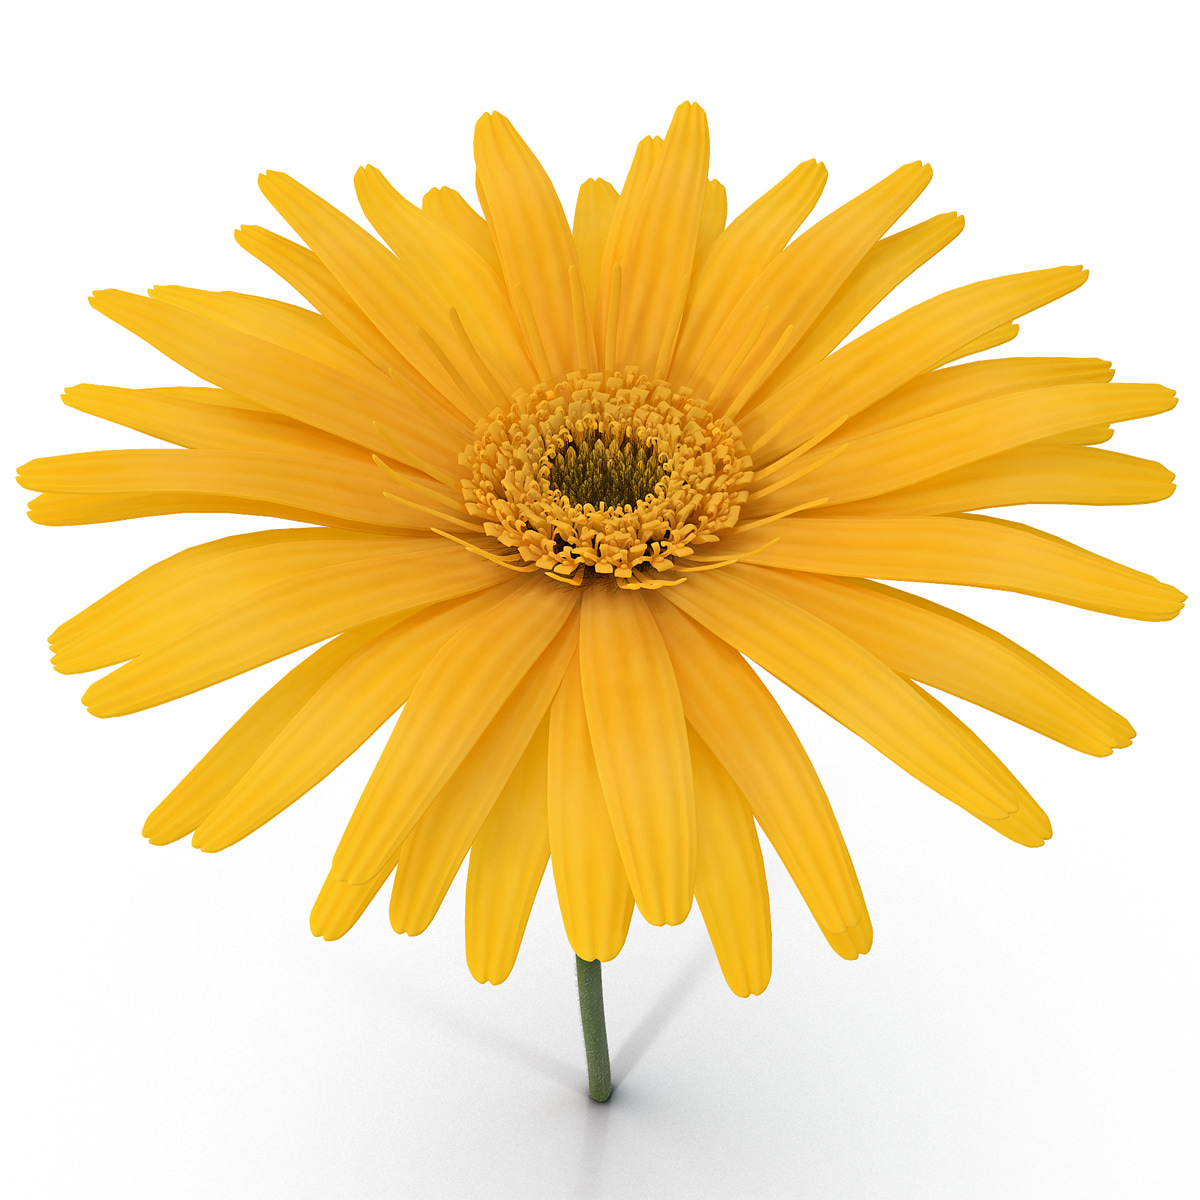 Yellow_Daisy_007.jpg